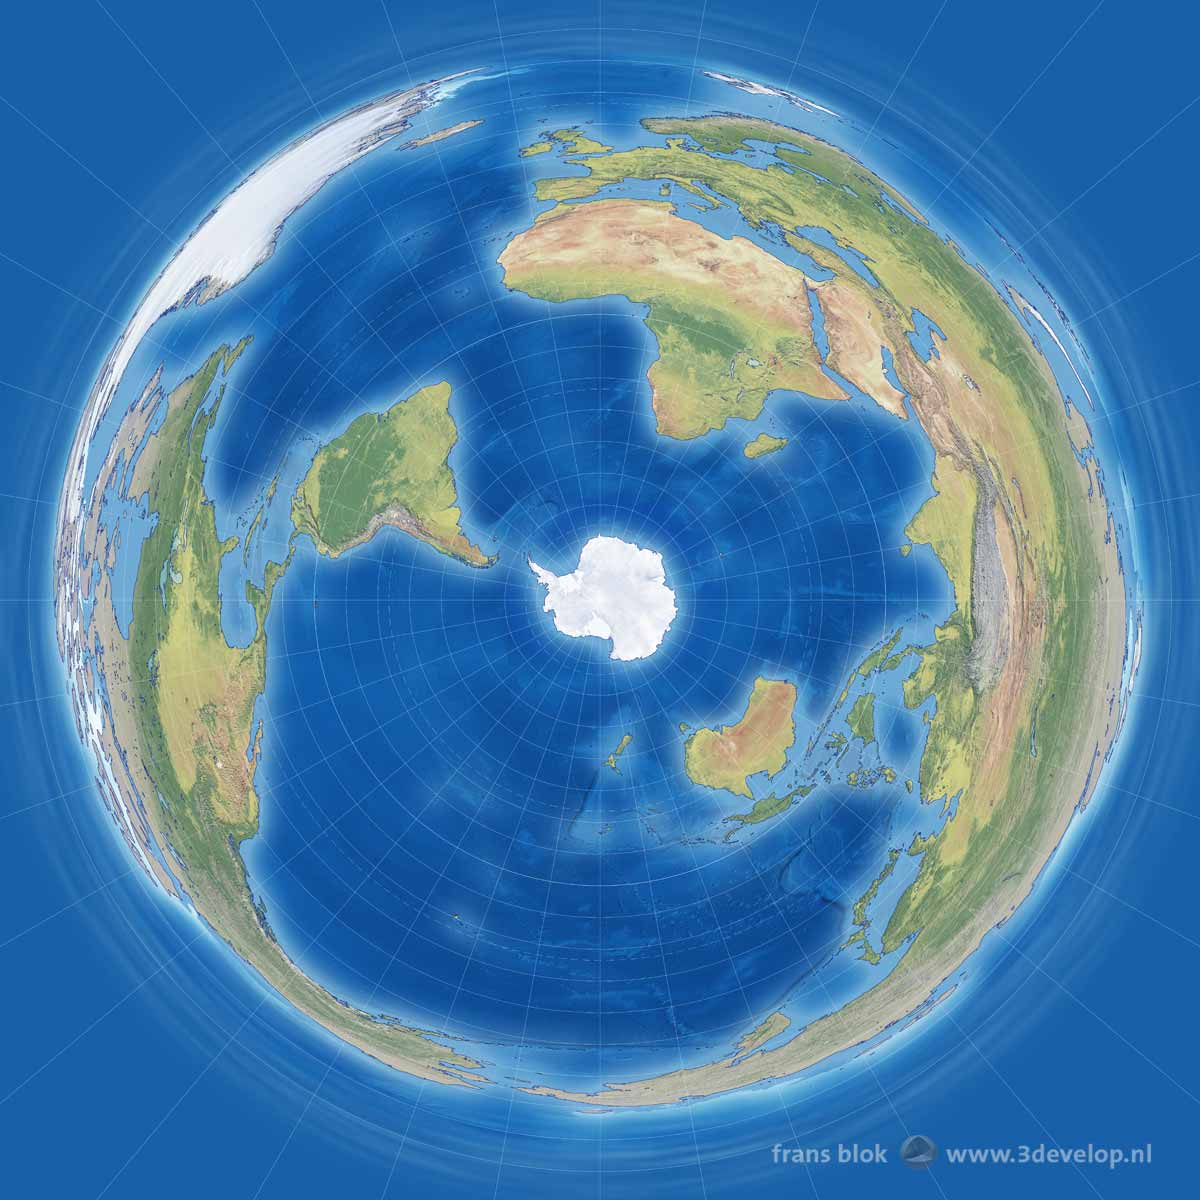 A world map according to the Antarctic or Penguin projection, with the southpole in the middle and increasingly dramatic distortions towards the north